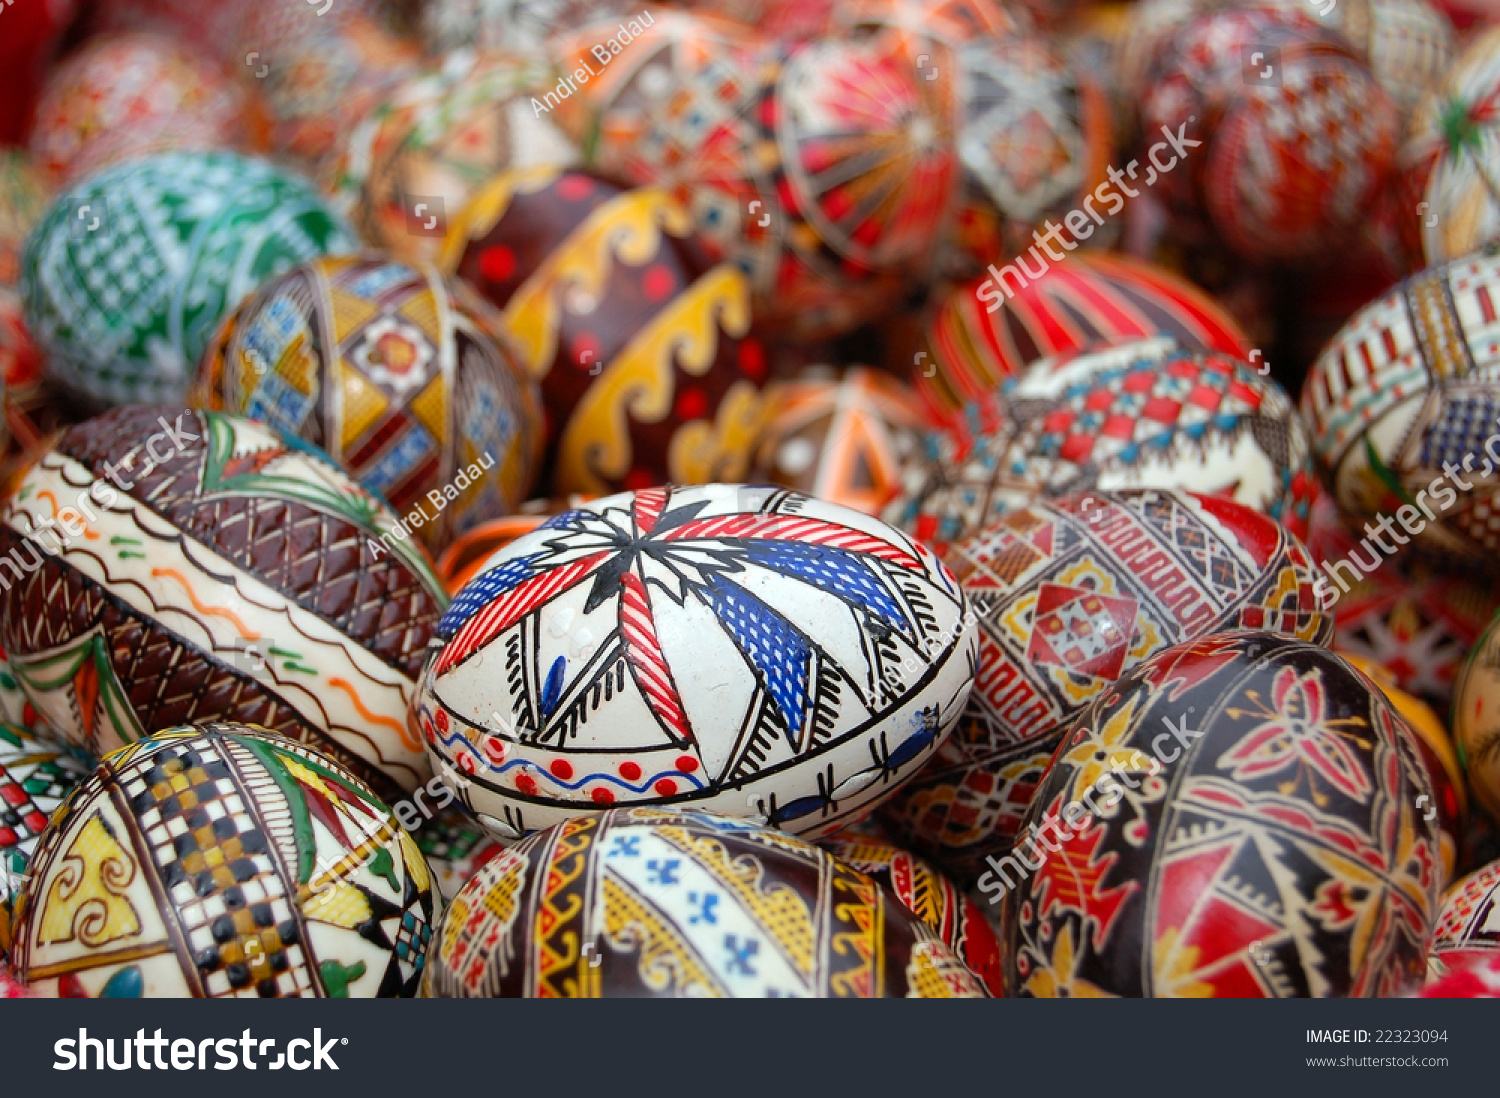 Painted eggs before easter romania stock photo 22323094 shutterstock painted eggs before the easter in romania negle Choice Image